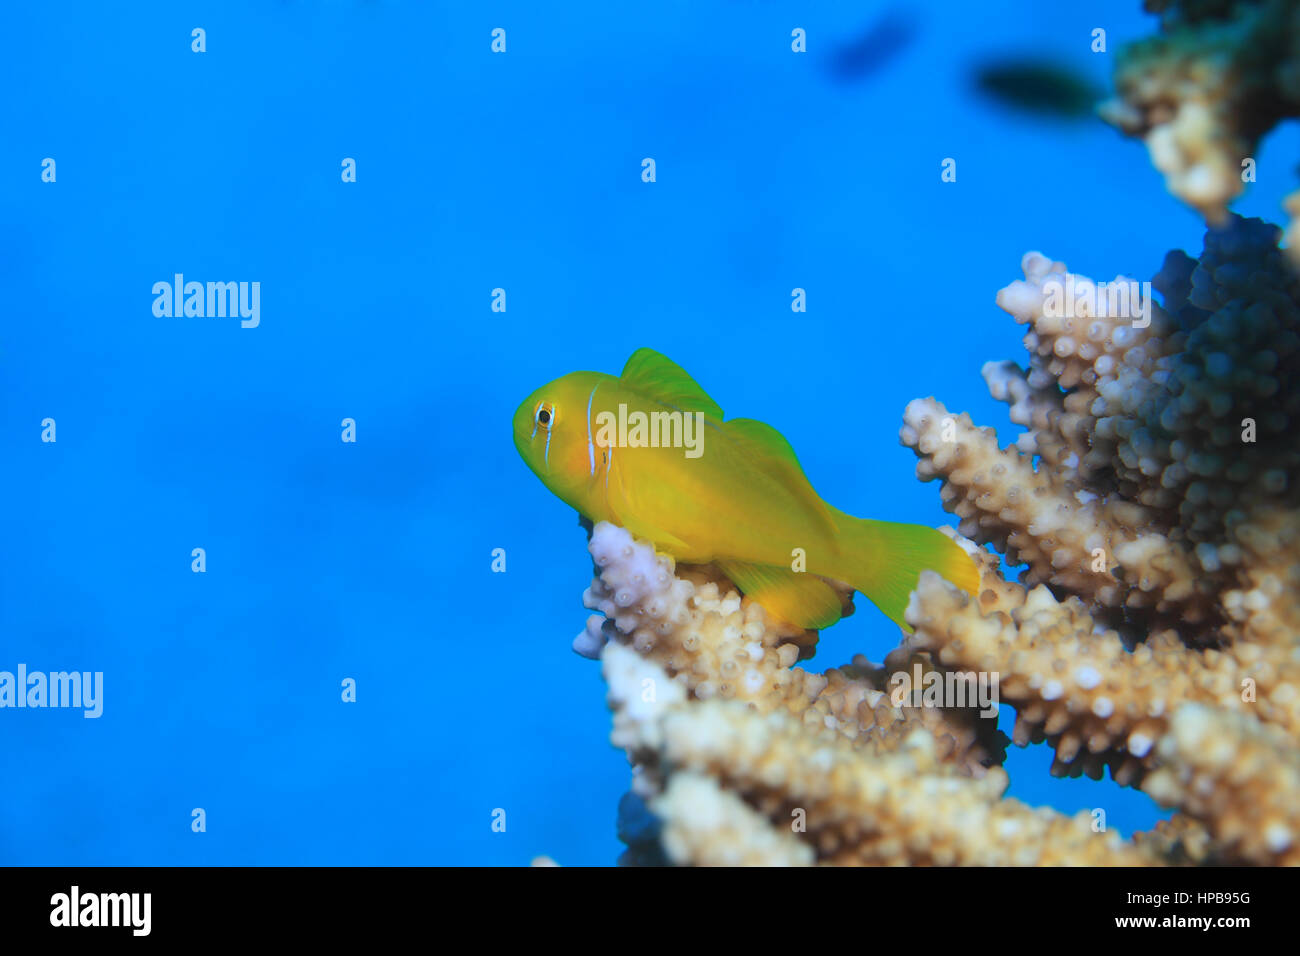 Lemon coral goby fish (Gobiodon citrinus) underwater on stony coral in the Red Sea - Stock Image